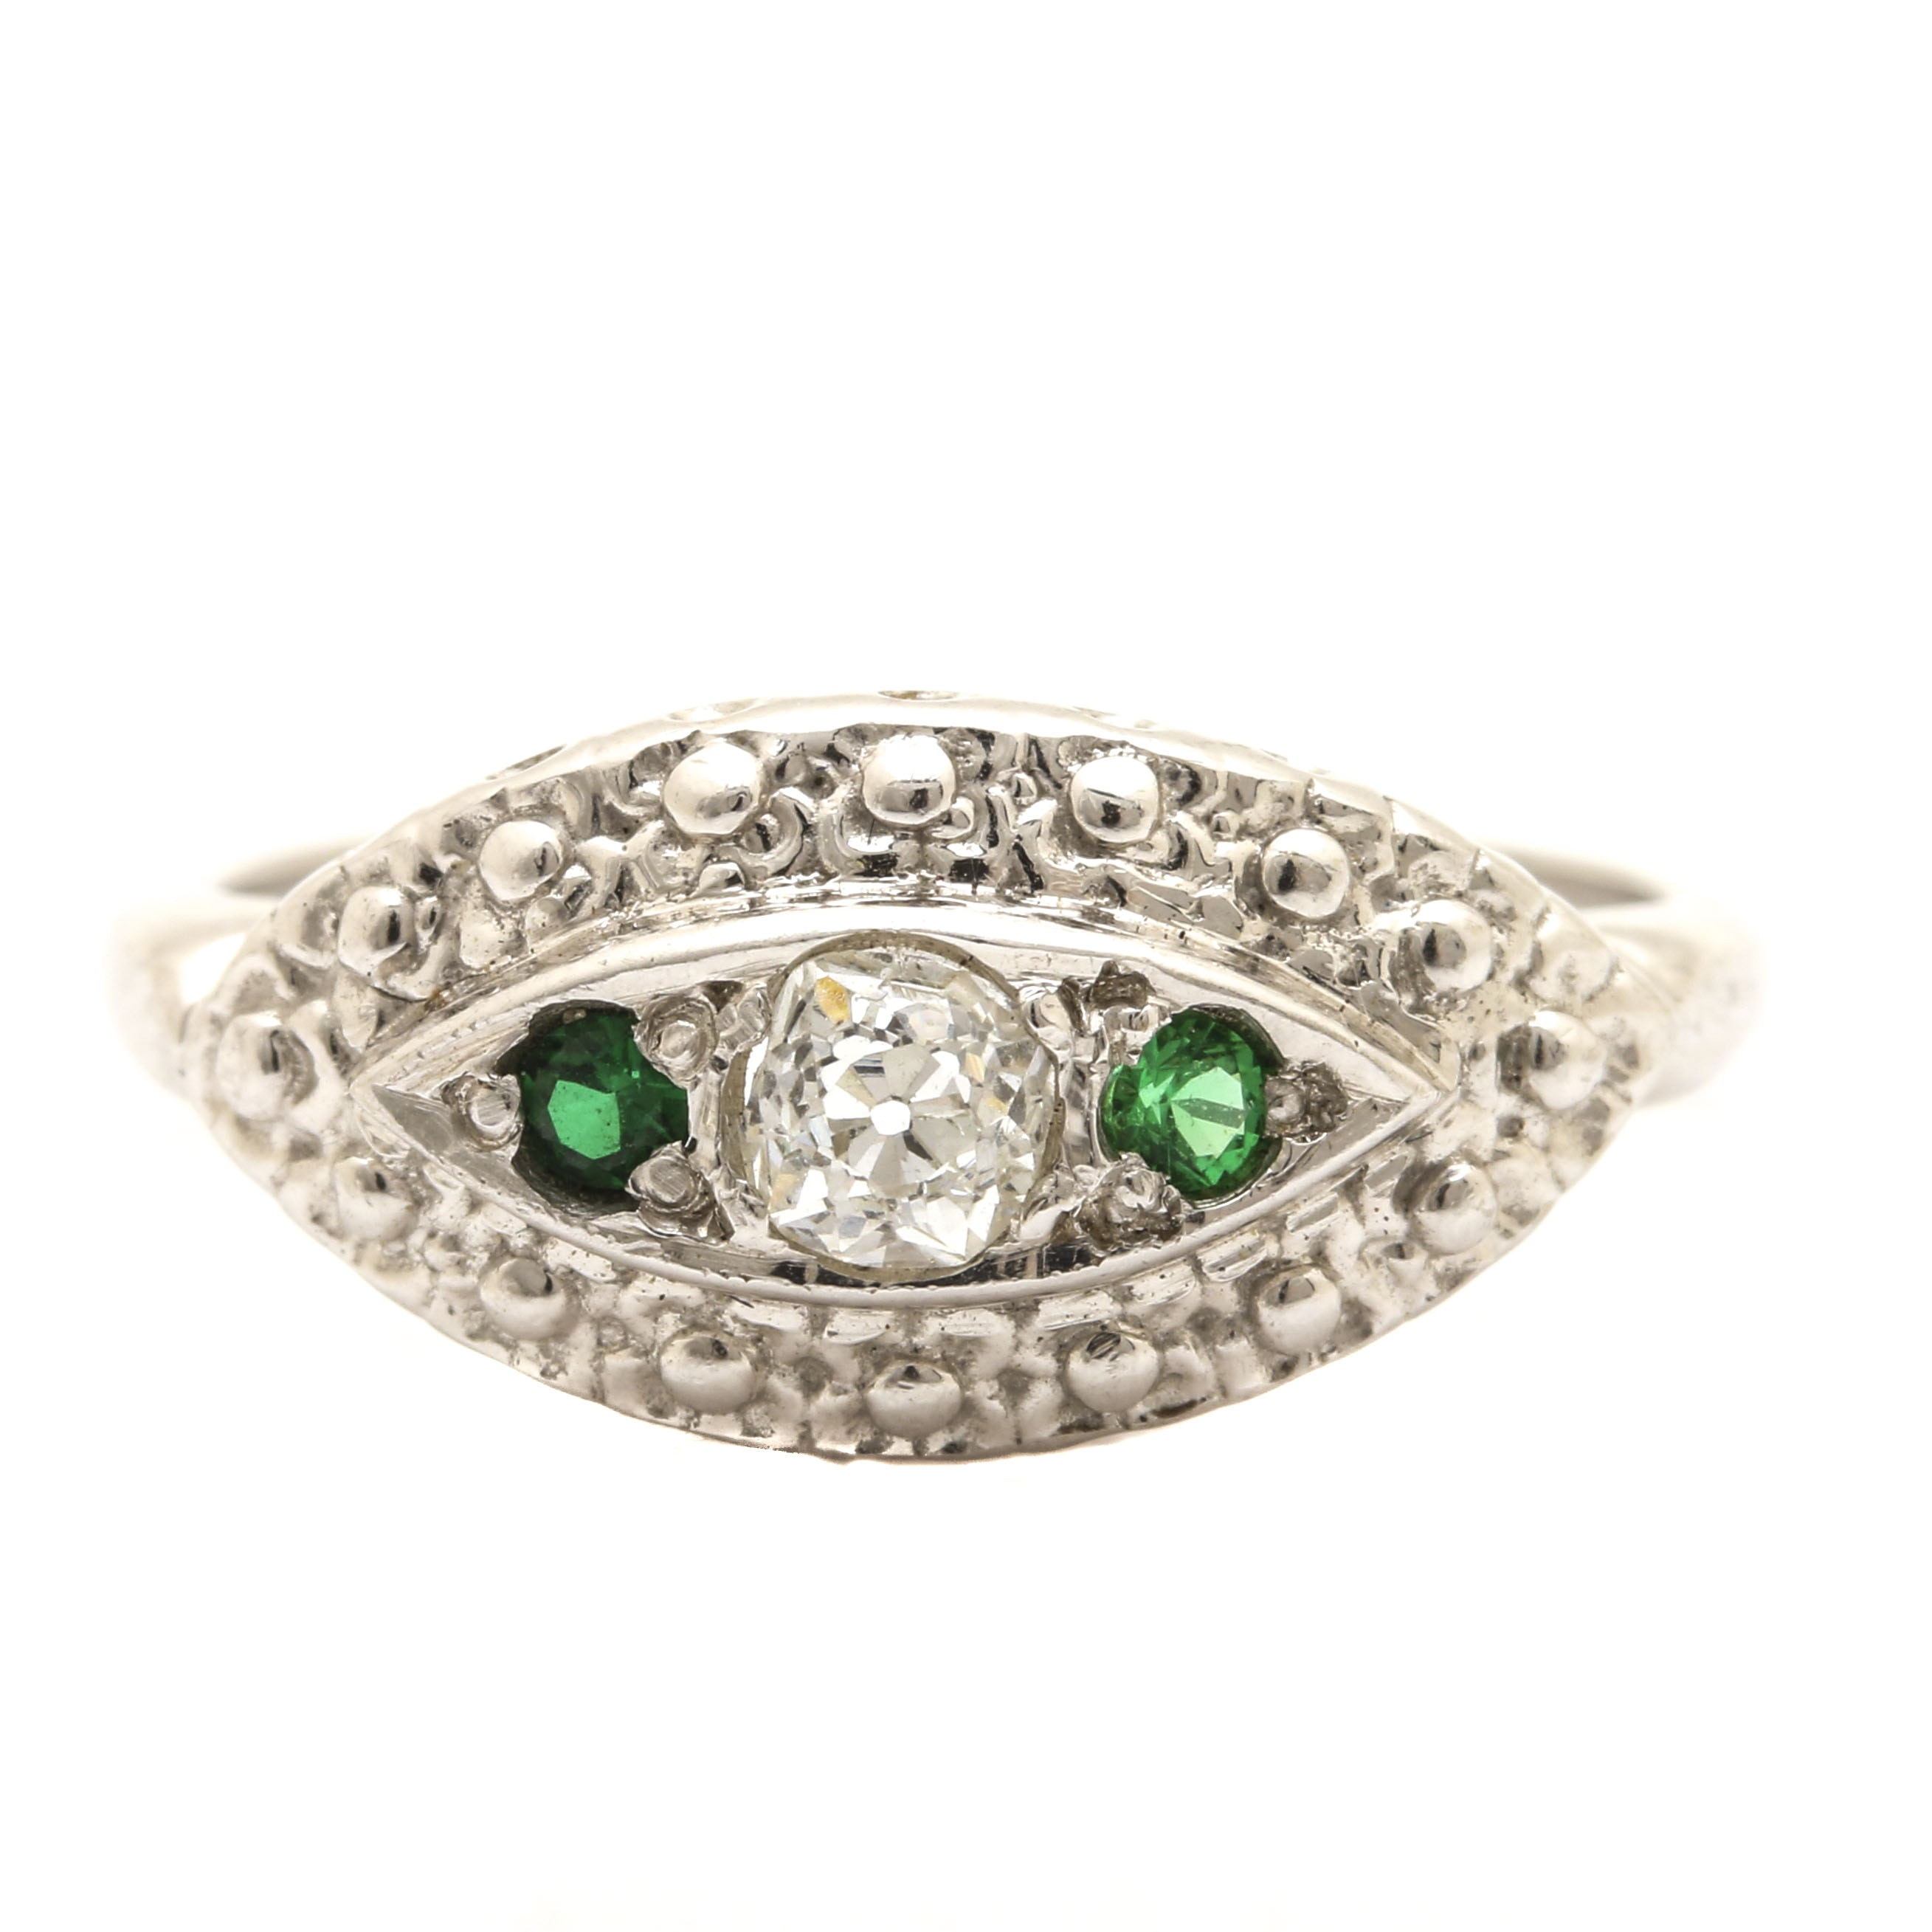 14K White Gold Diamond and Green Glass Ring